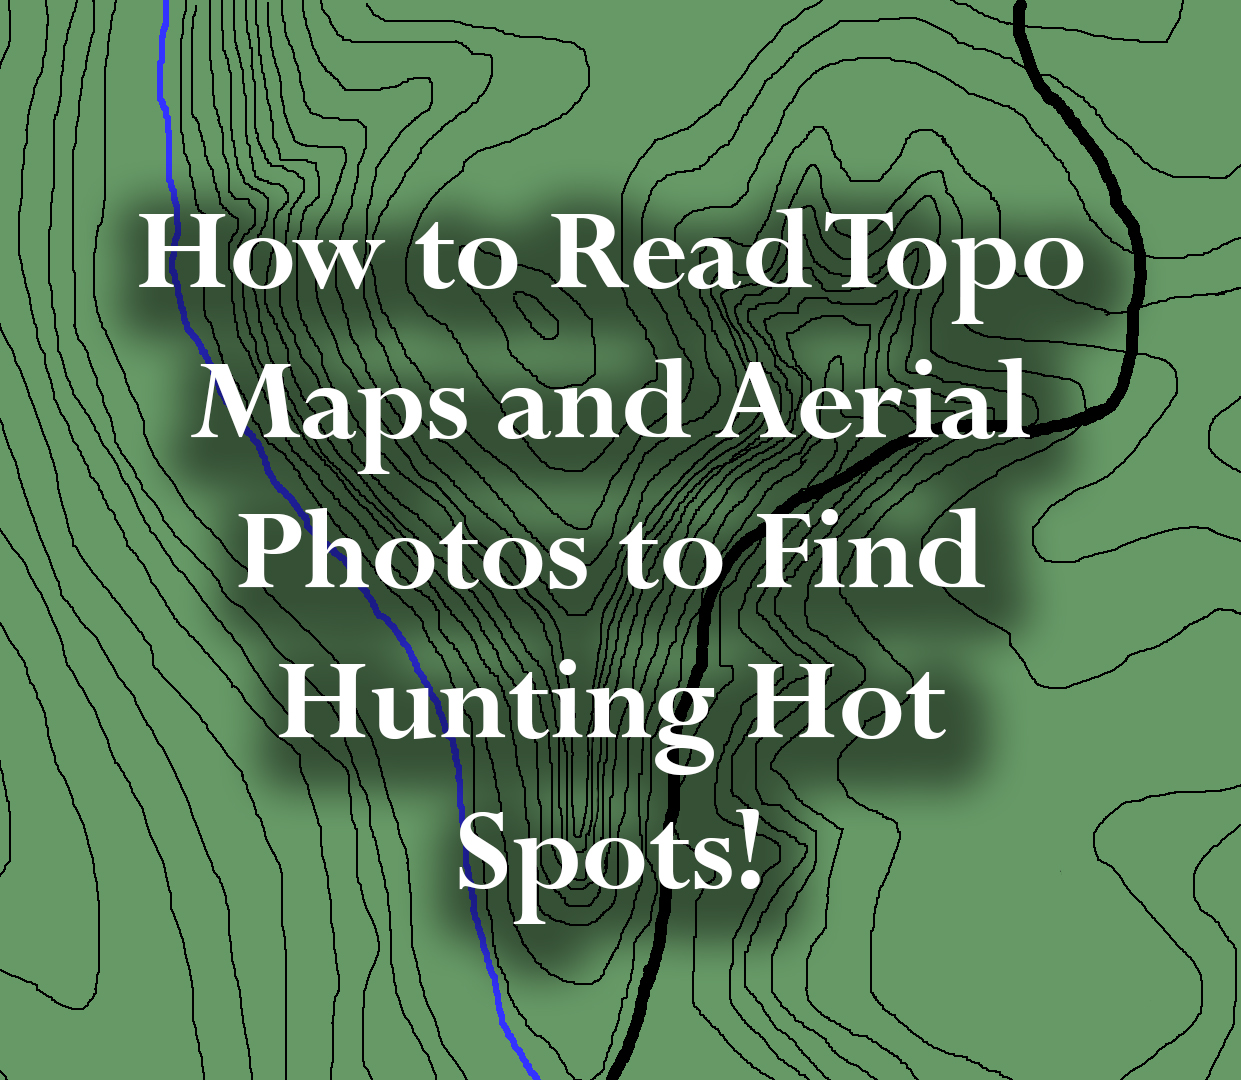 How To Read Topo Maps And Aerial Photos To Find Hunting Hot Spots - How to read topographic maps